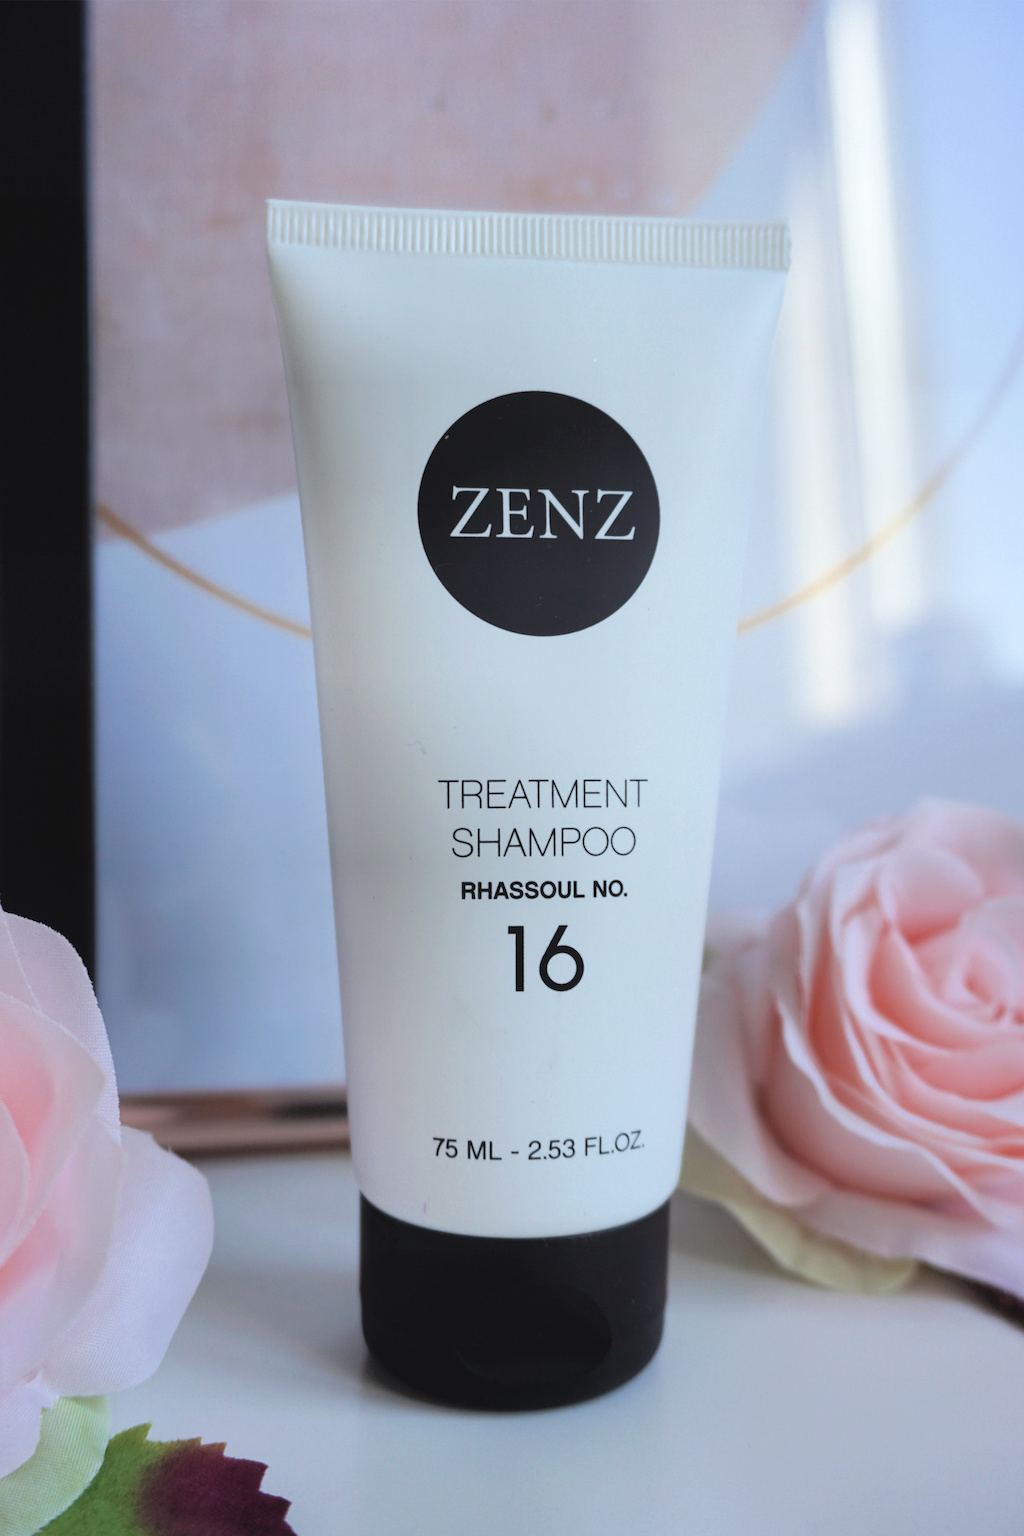 ZENZ Rhassoul Treatment Shampoo No. 16 Review